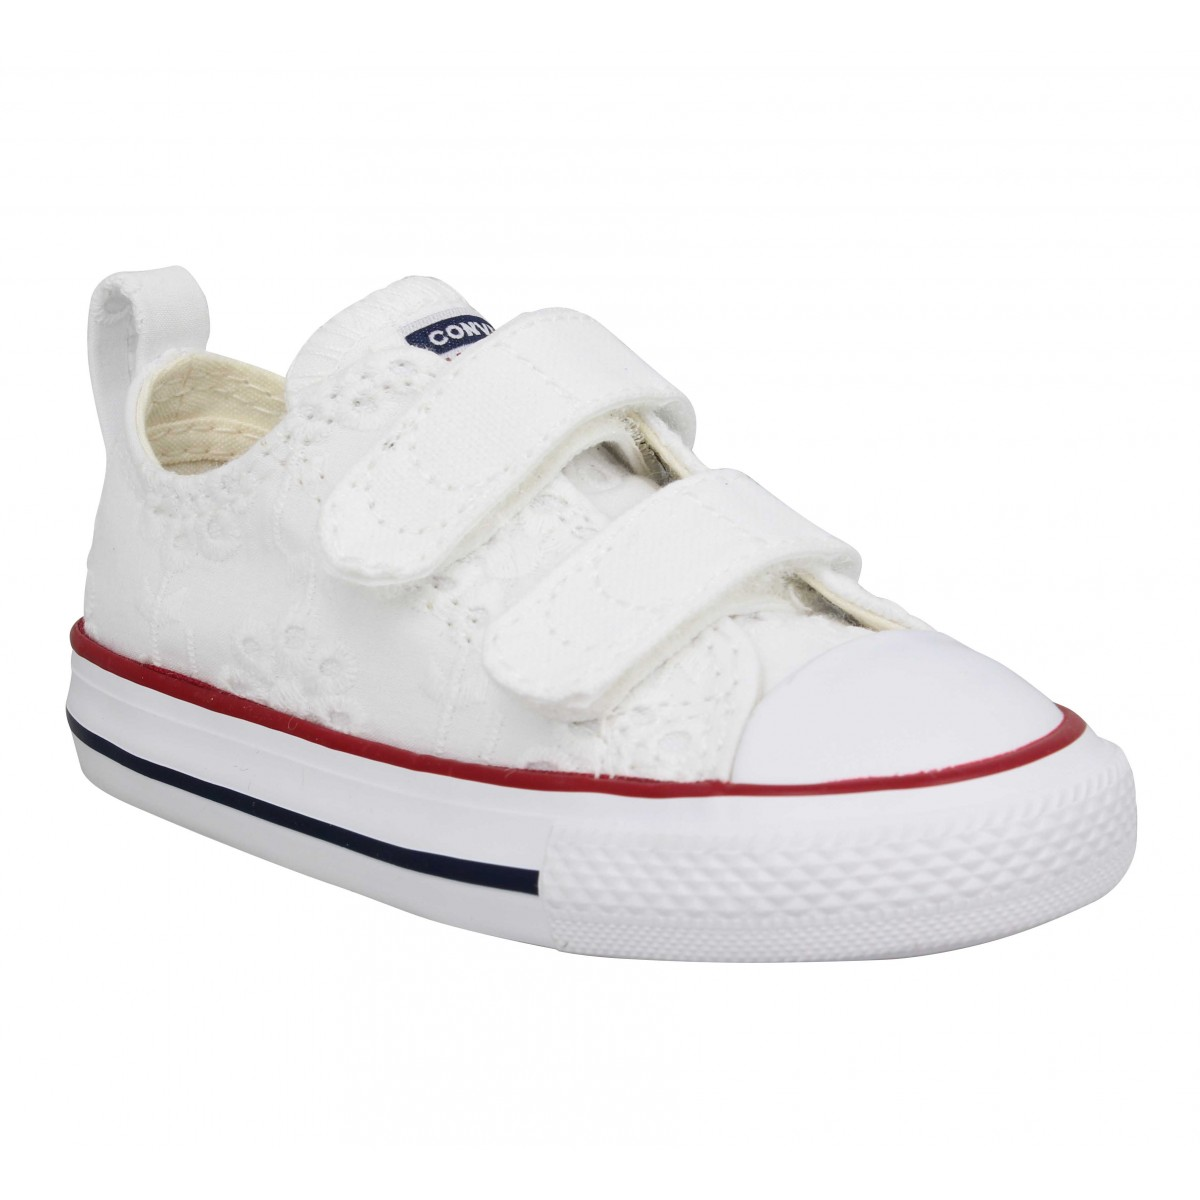 Converse chuck taylor all star 2v broderies enfant blanc